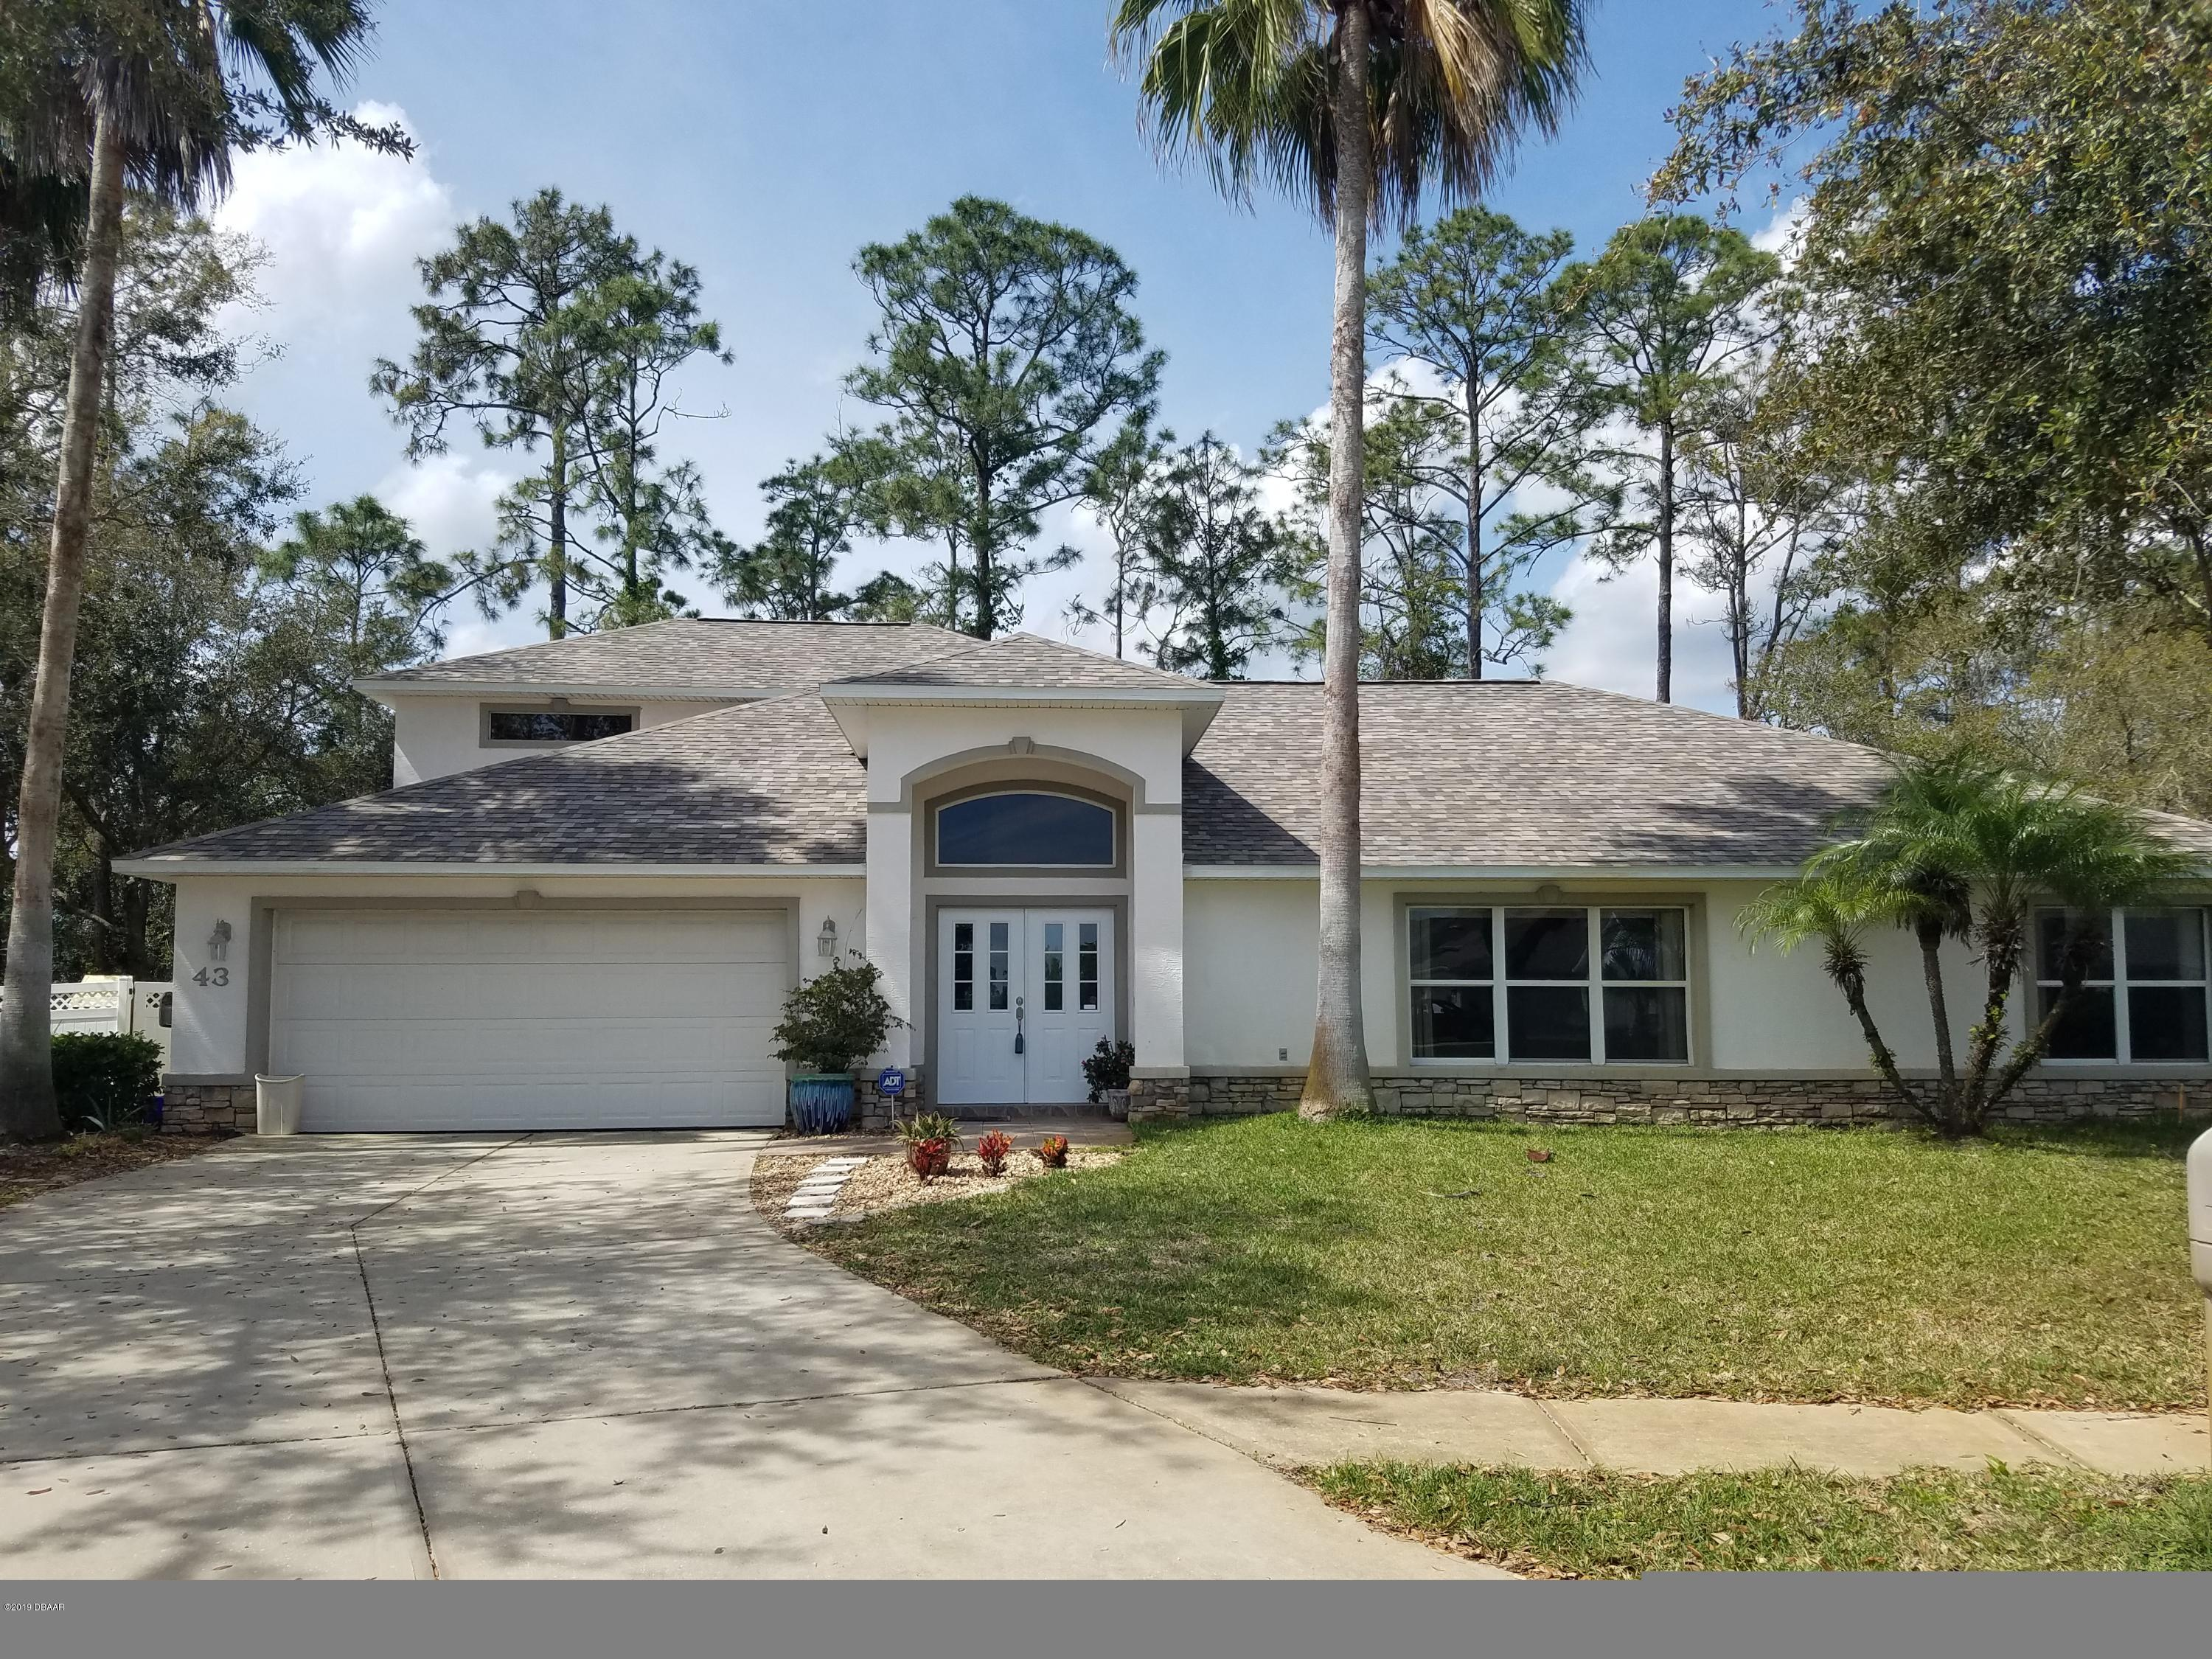 43  Peruvian Lane 32174 - One of Ormond Beach Homes for Sale